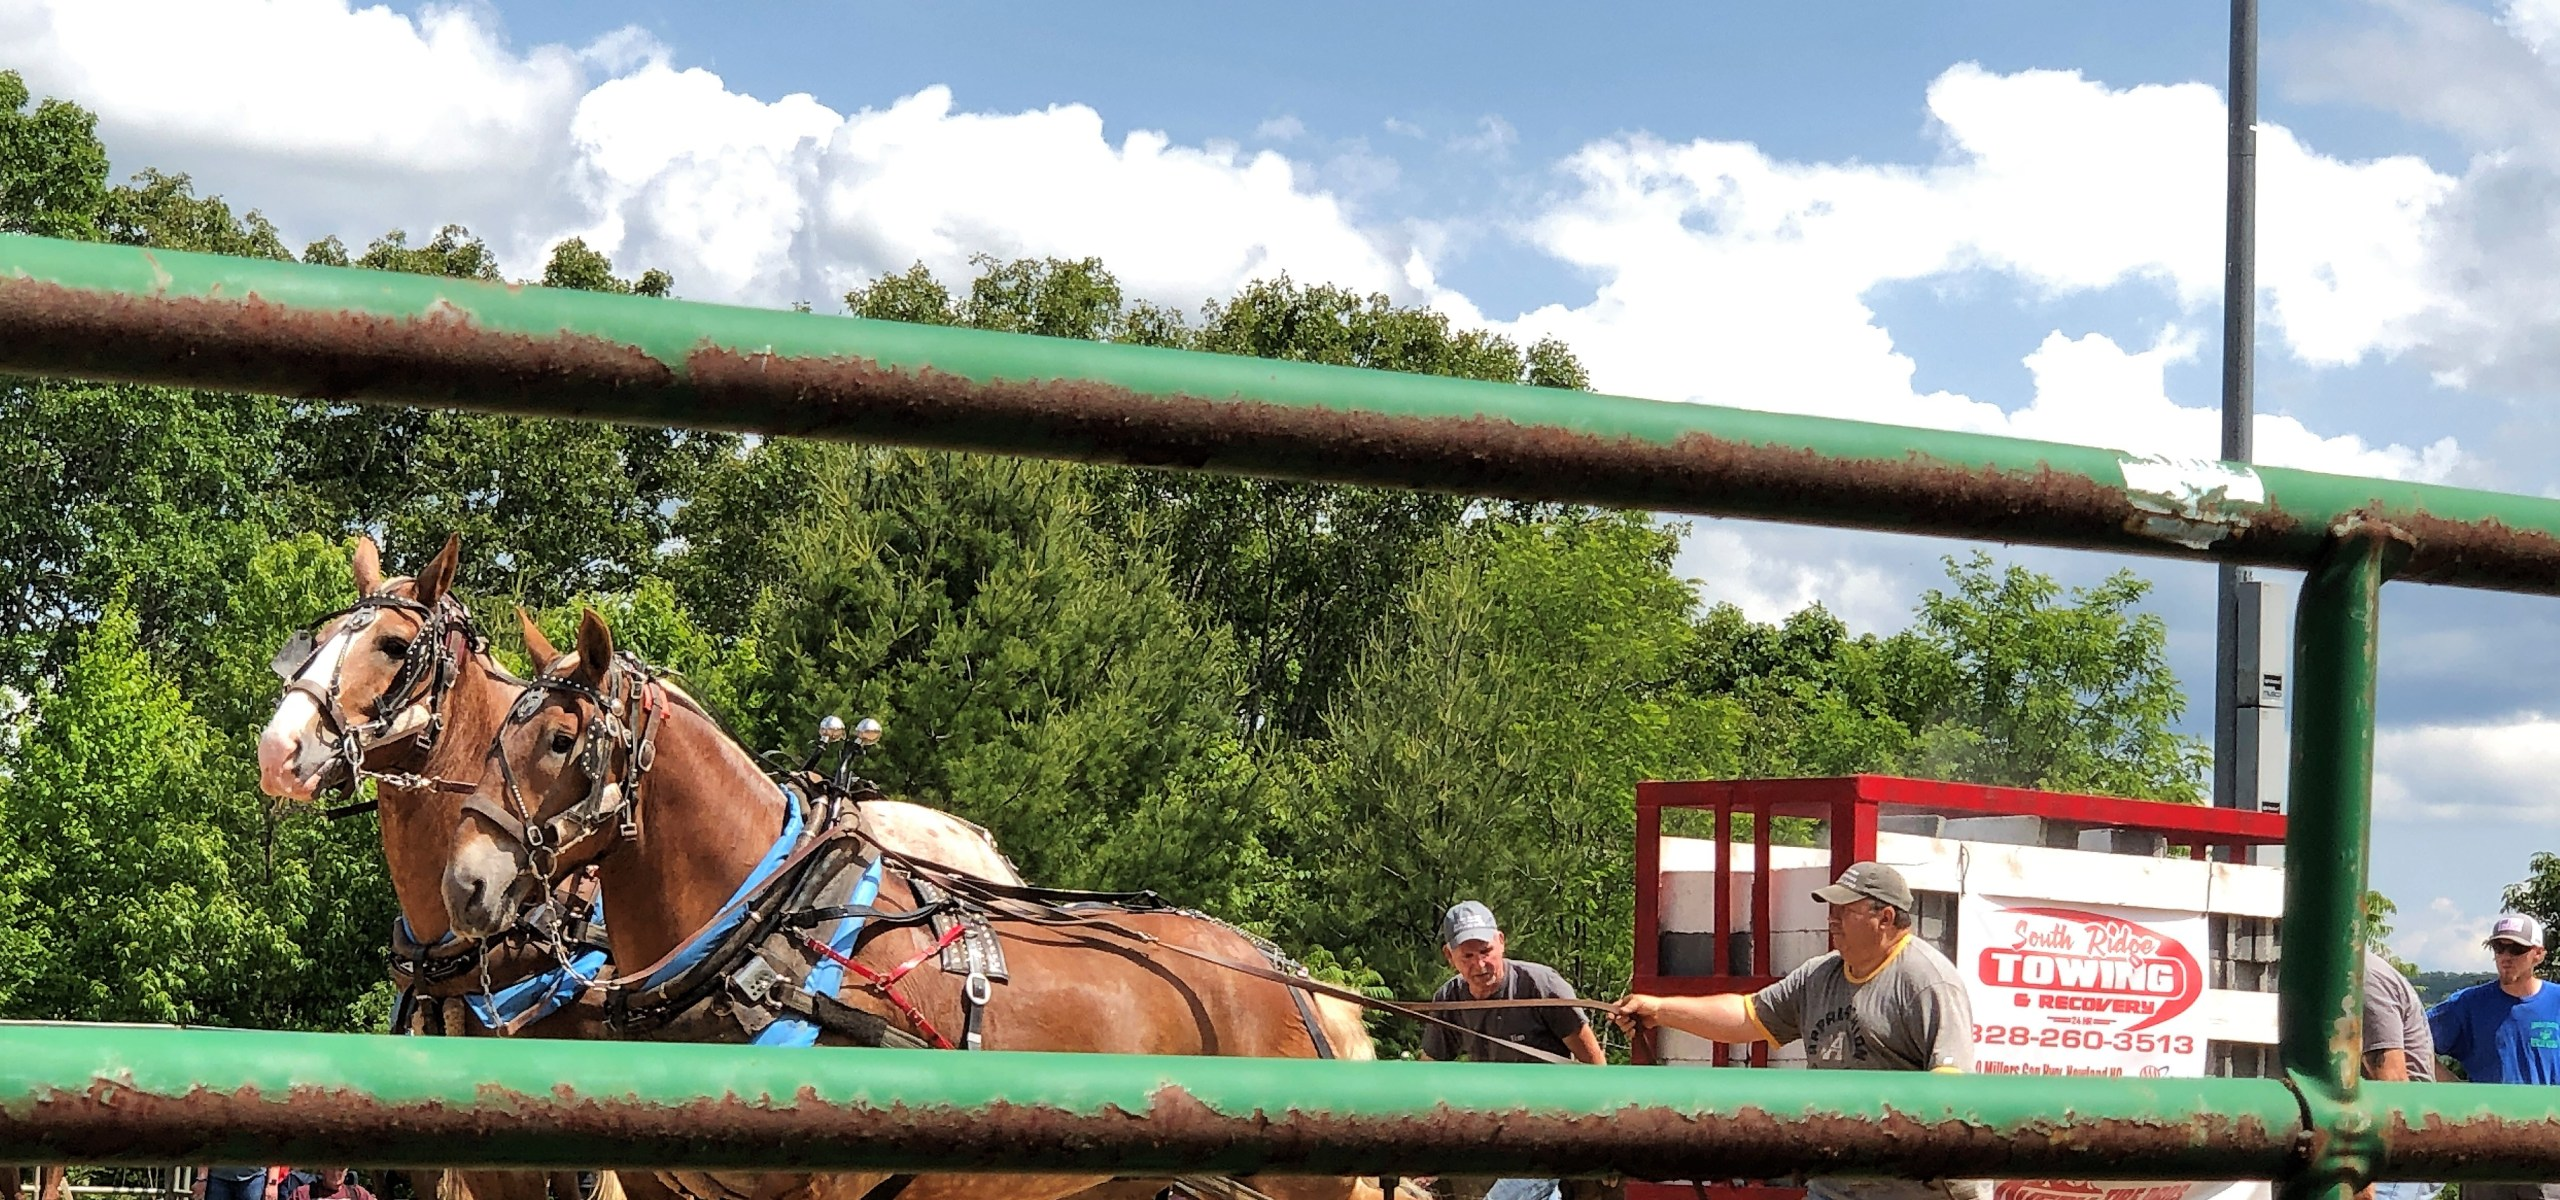 Big Draft horses make the Horse Pull look easy.